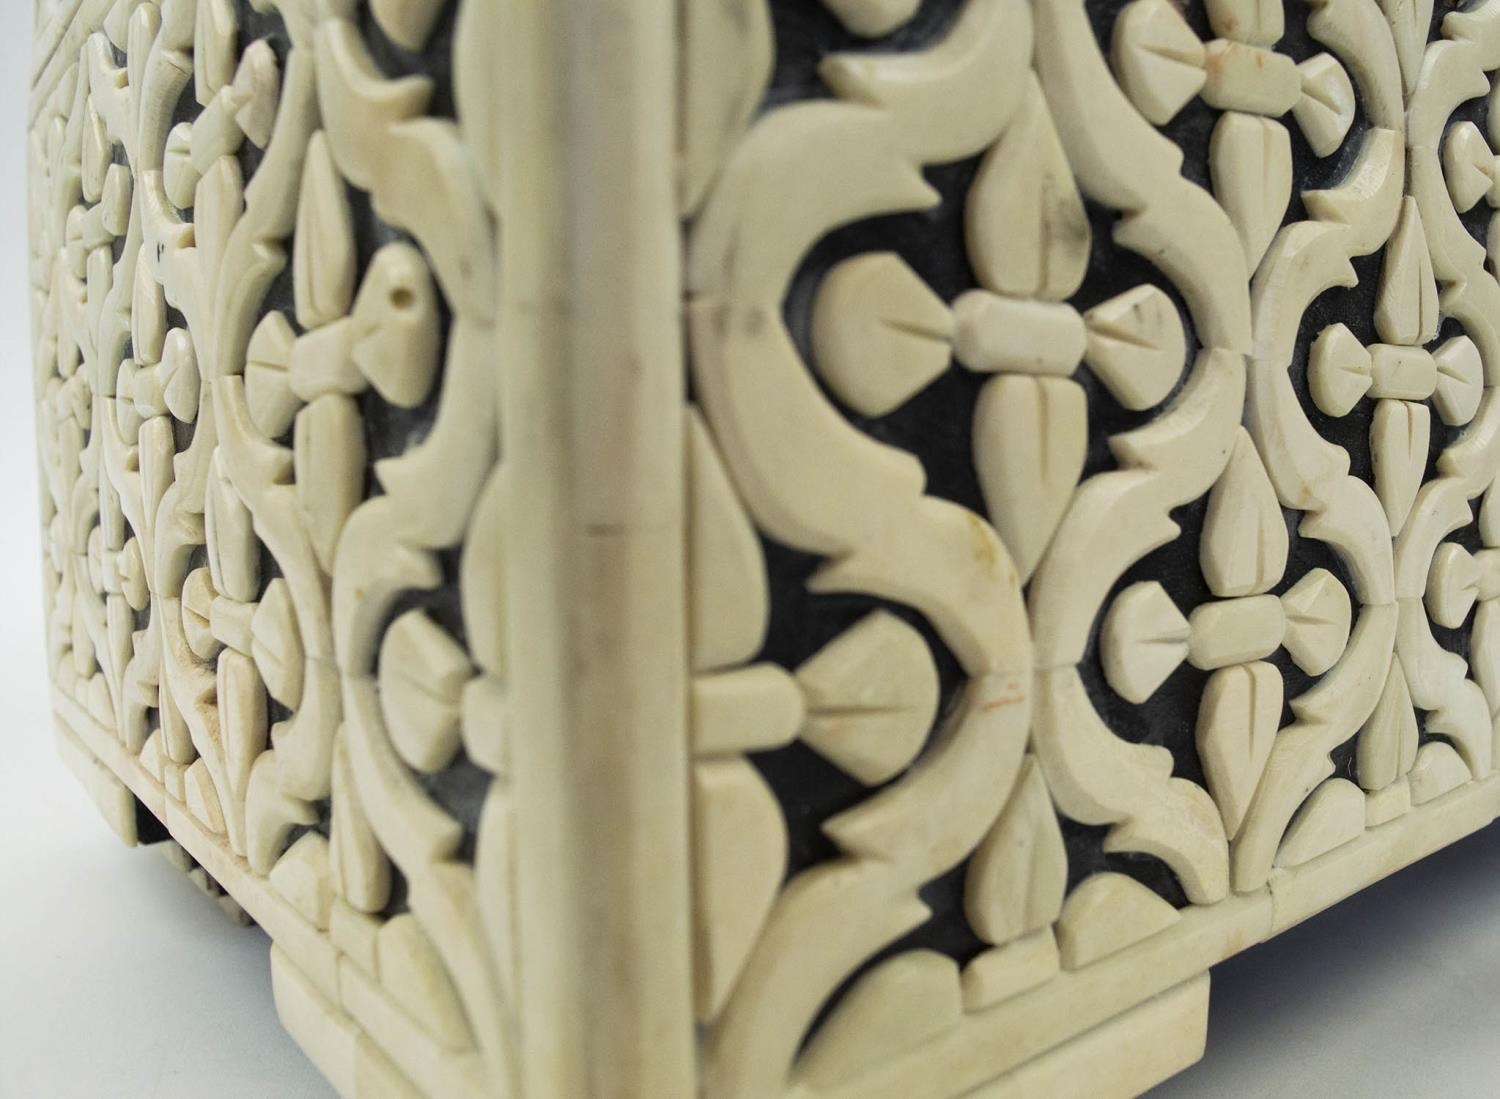 CASKET, bone geometric clad with hinged top and interior tray, 22cm H x 38cm x 25cm. - Image 4 of 7